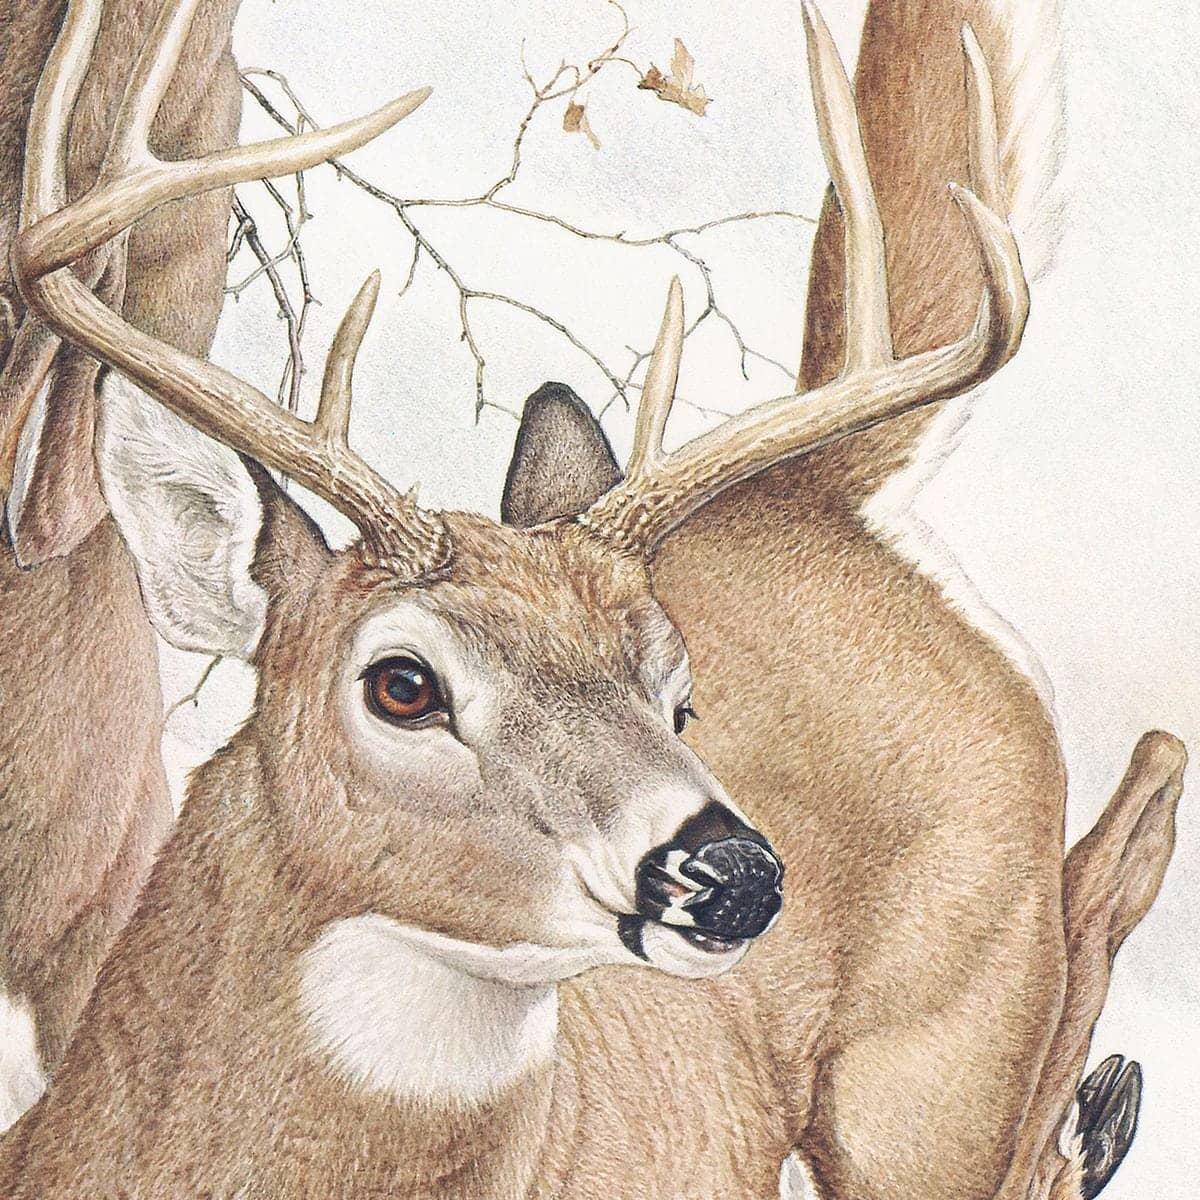 White-tailed Deer - Art Print by Glen Loates from the Glen Loates Store